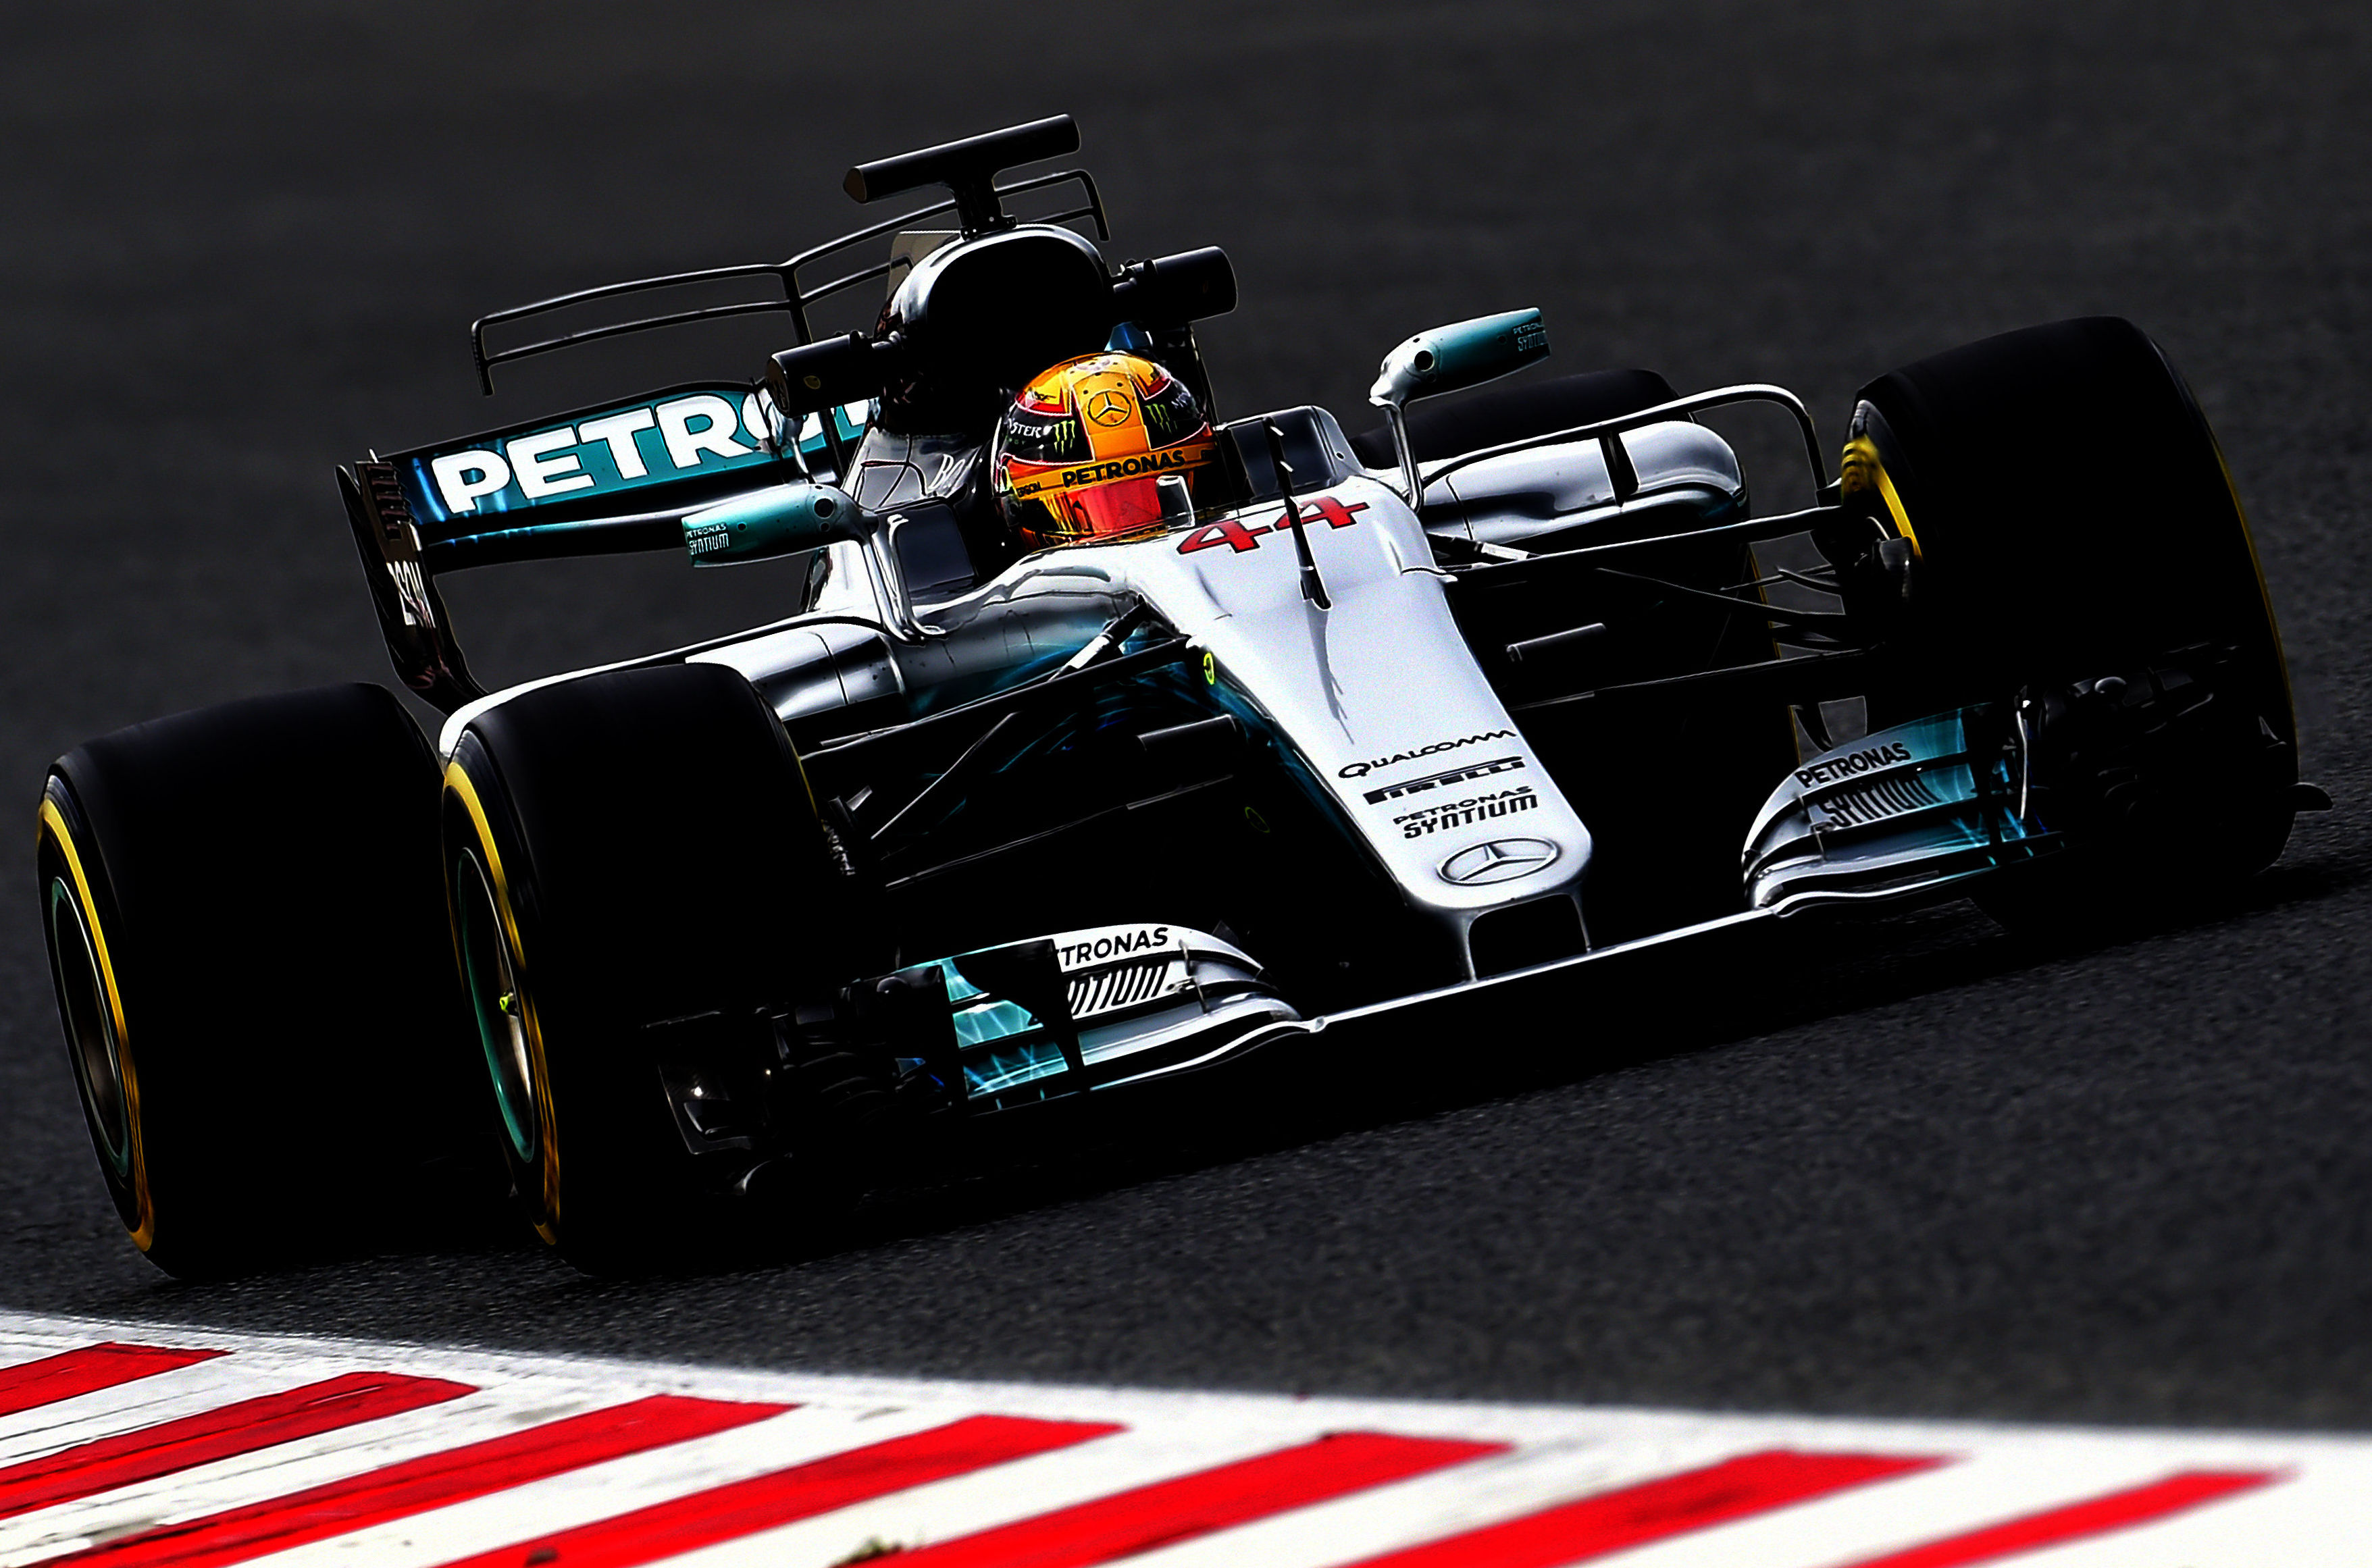 Mercedes AMG Petronas F1 Team's British driver Lewis Hamilton drives at the Circuit de Catalunya on February 28, 2017 in Montmelo on the outskirts of Barcelona during the second day of the first week of tests for the Formula One Grand Prix season